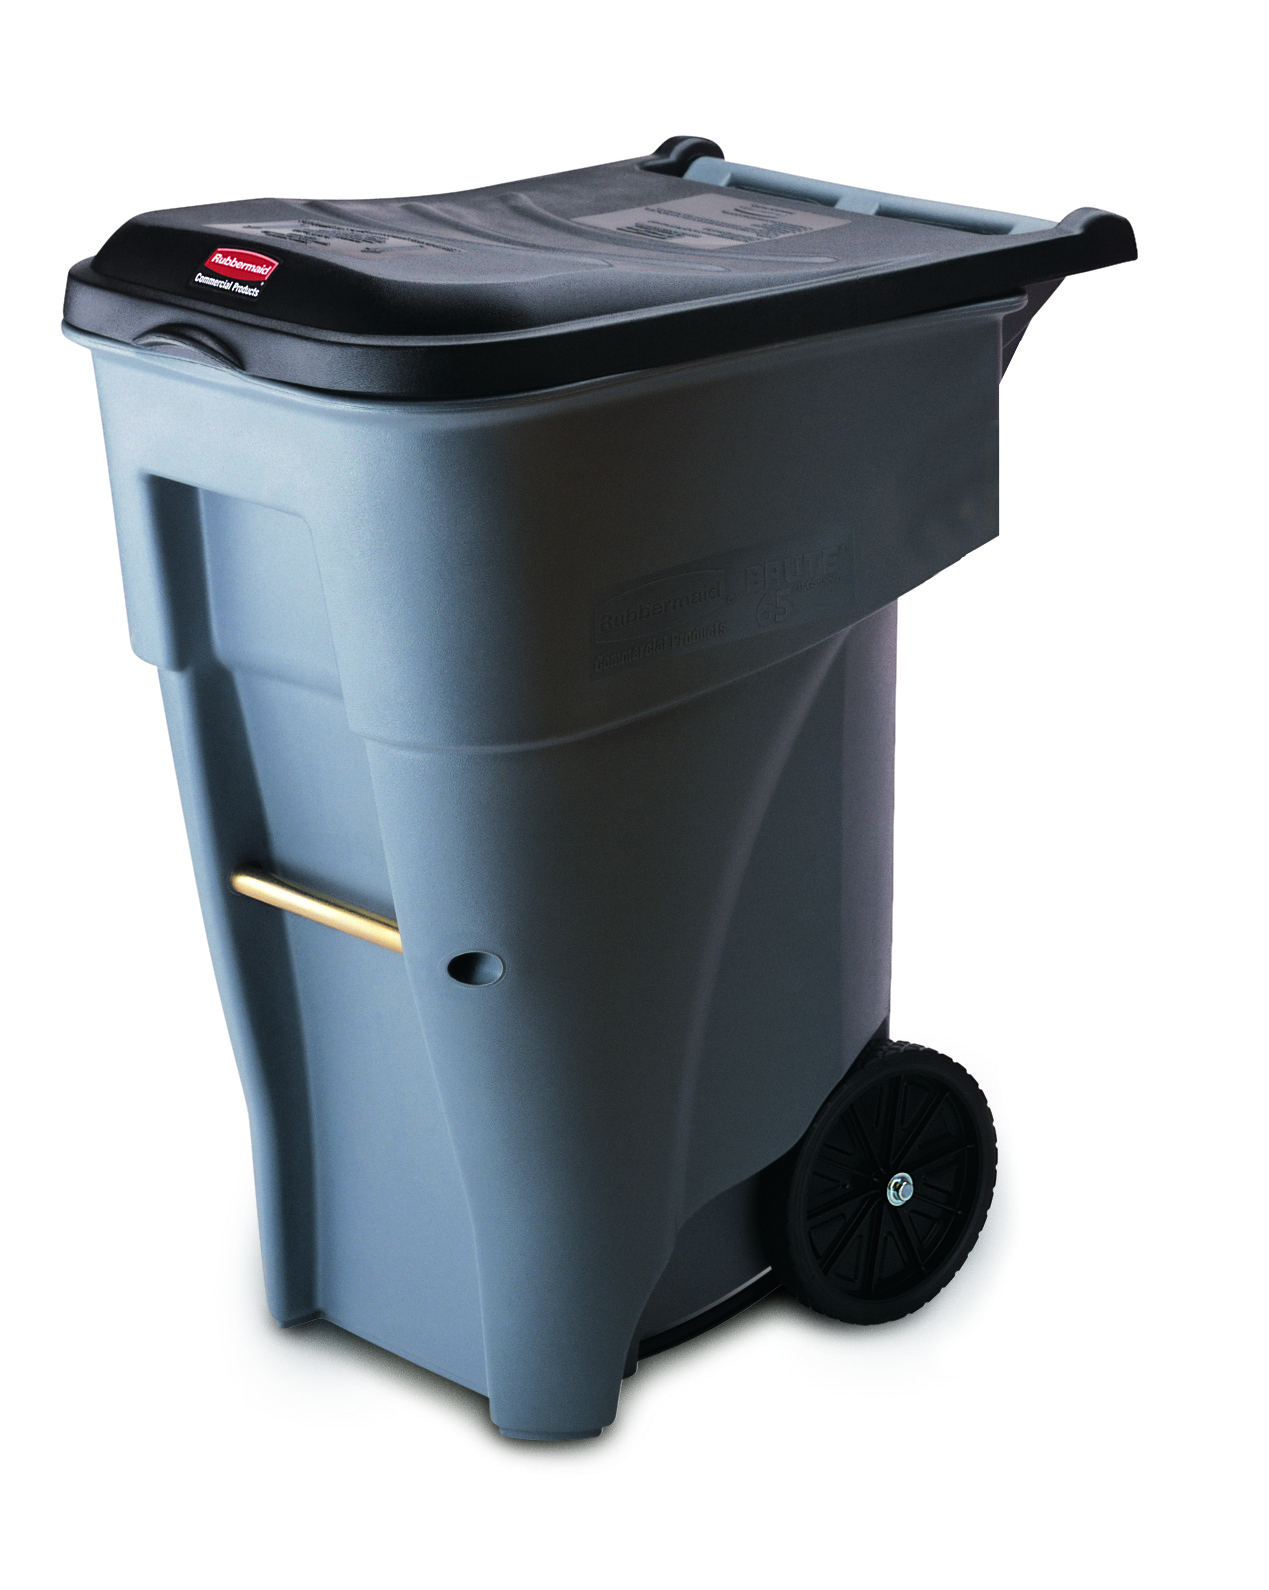 Rubbermaid Brute Rollout Large Recycling Containers